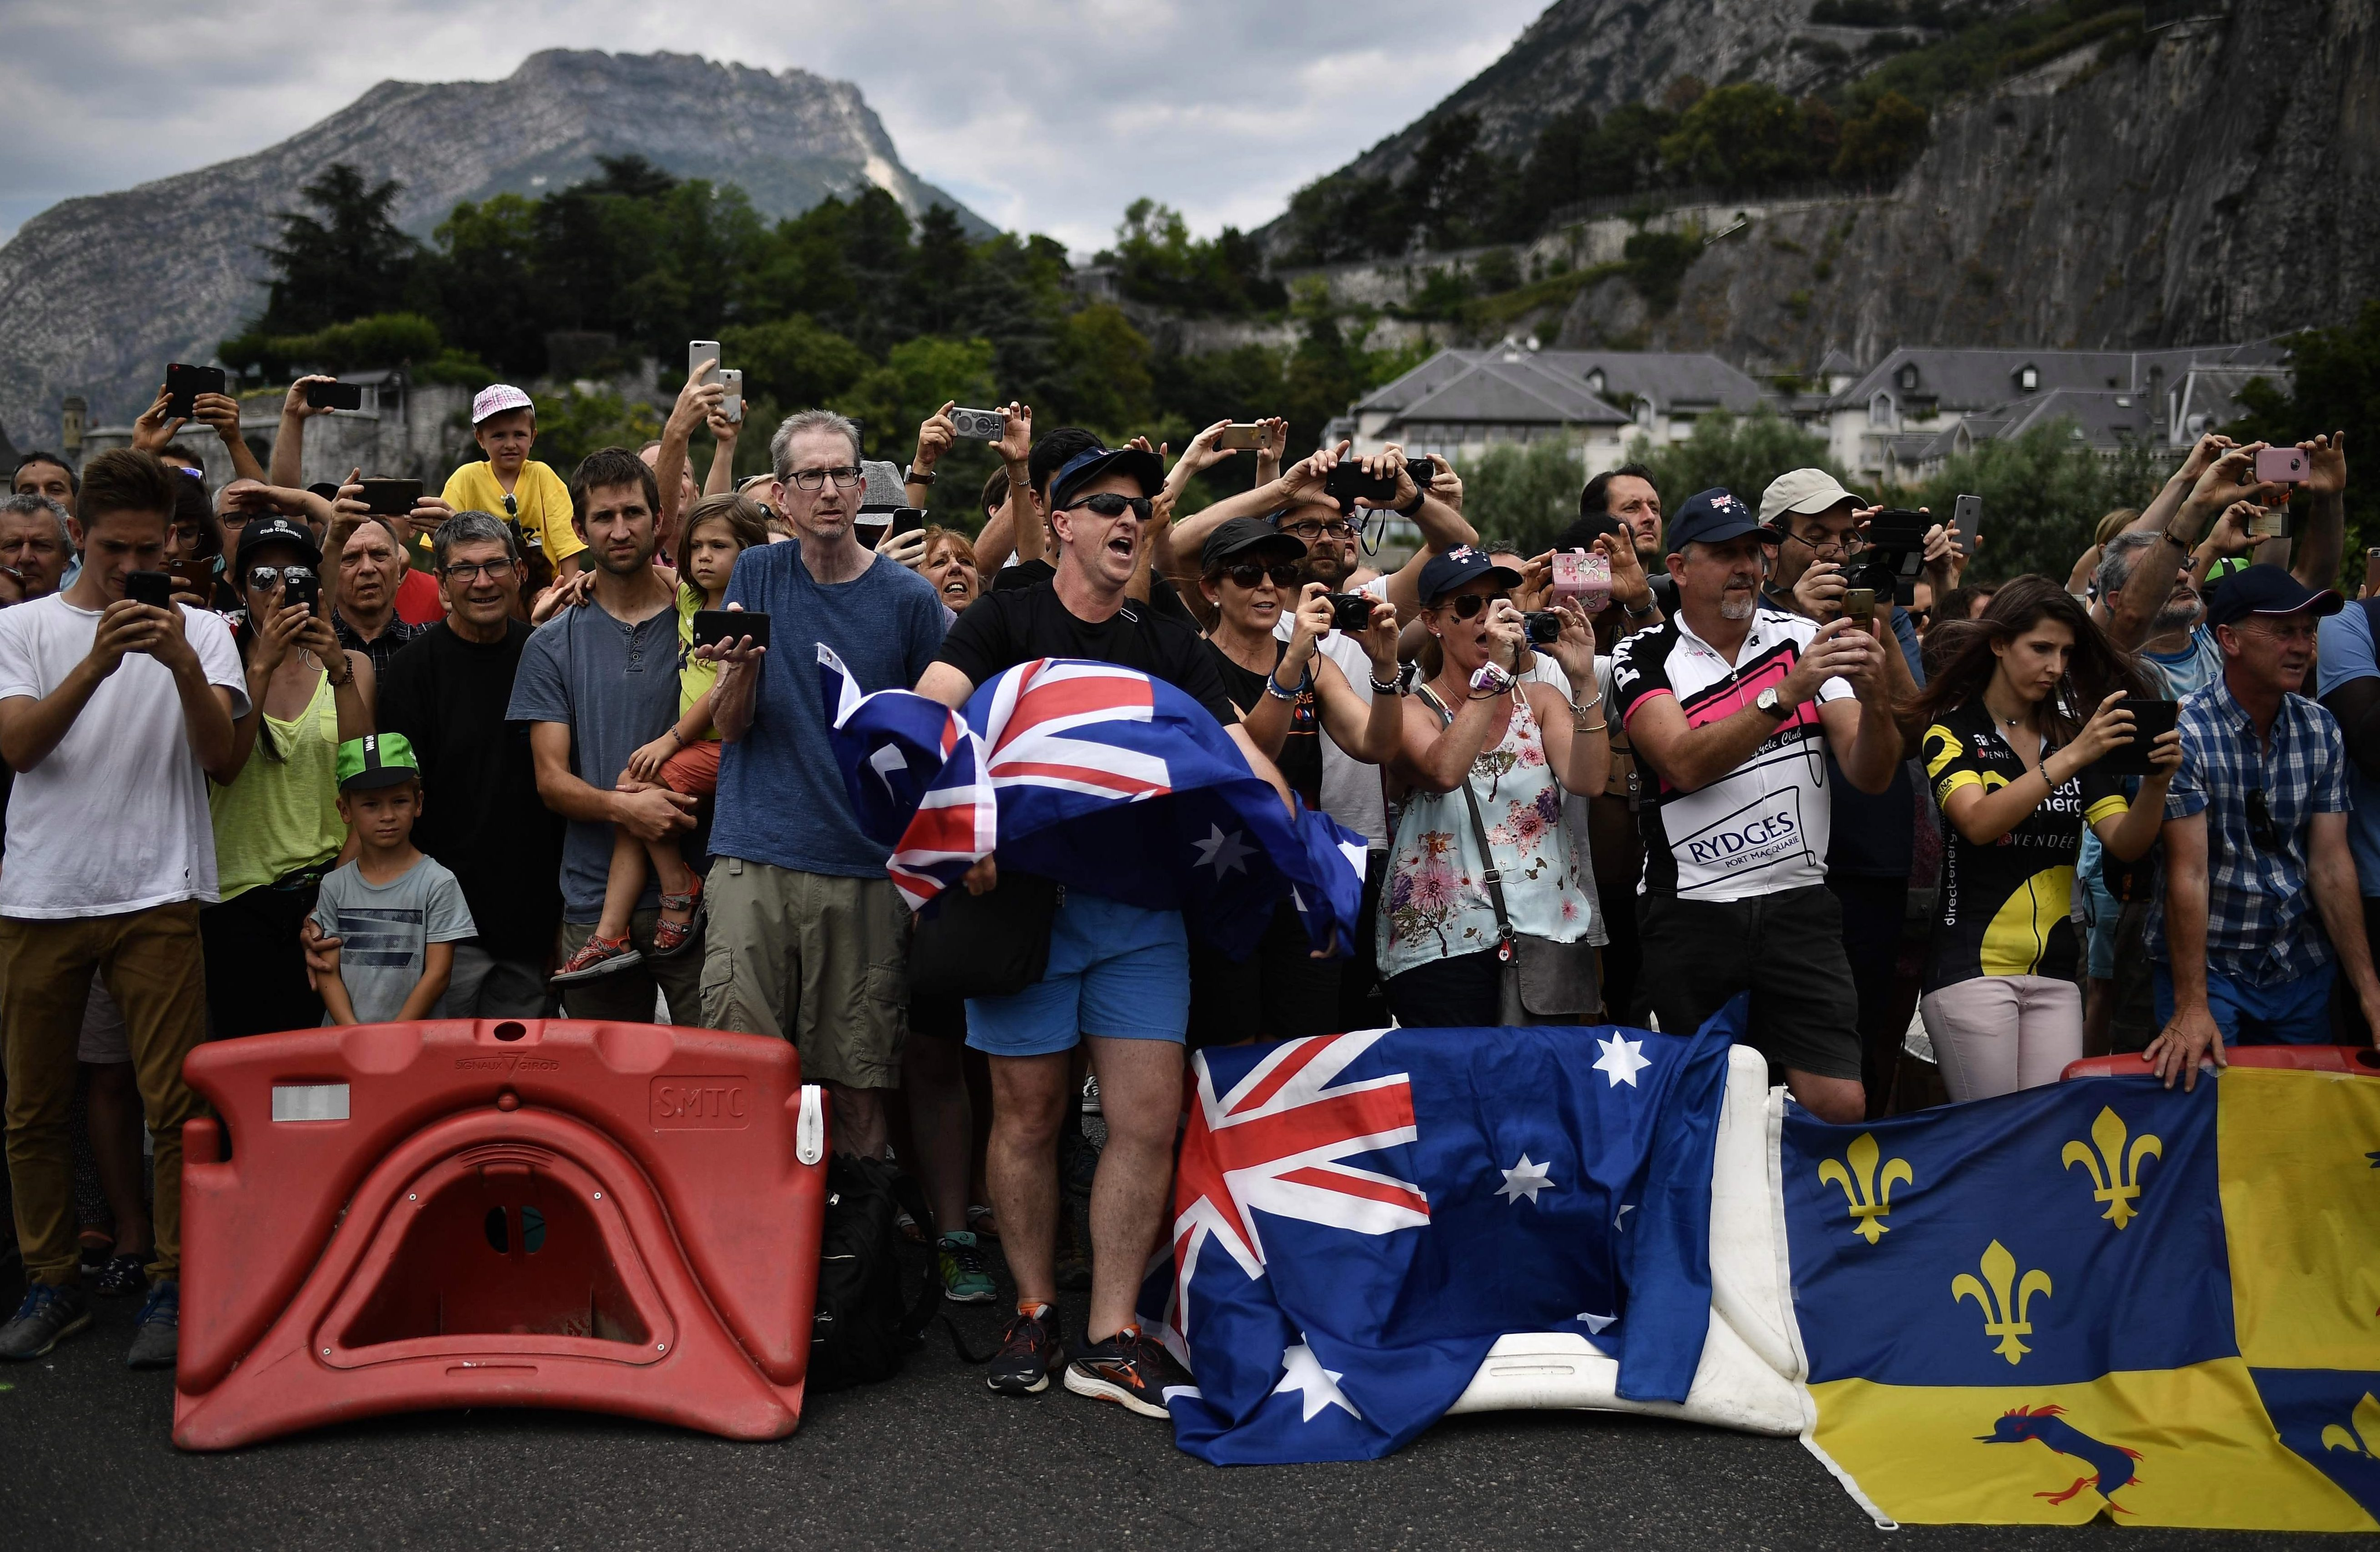 Fans wave Aussie flags on the 13th stage, from Le Bourg-d'Oisans to Valence